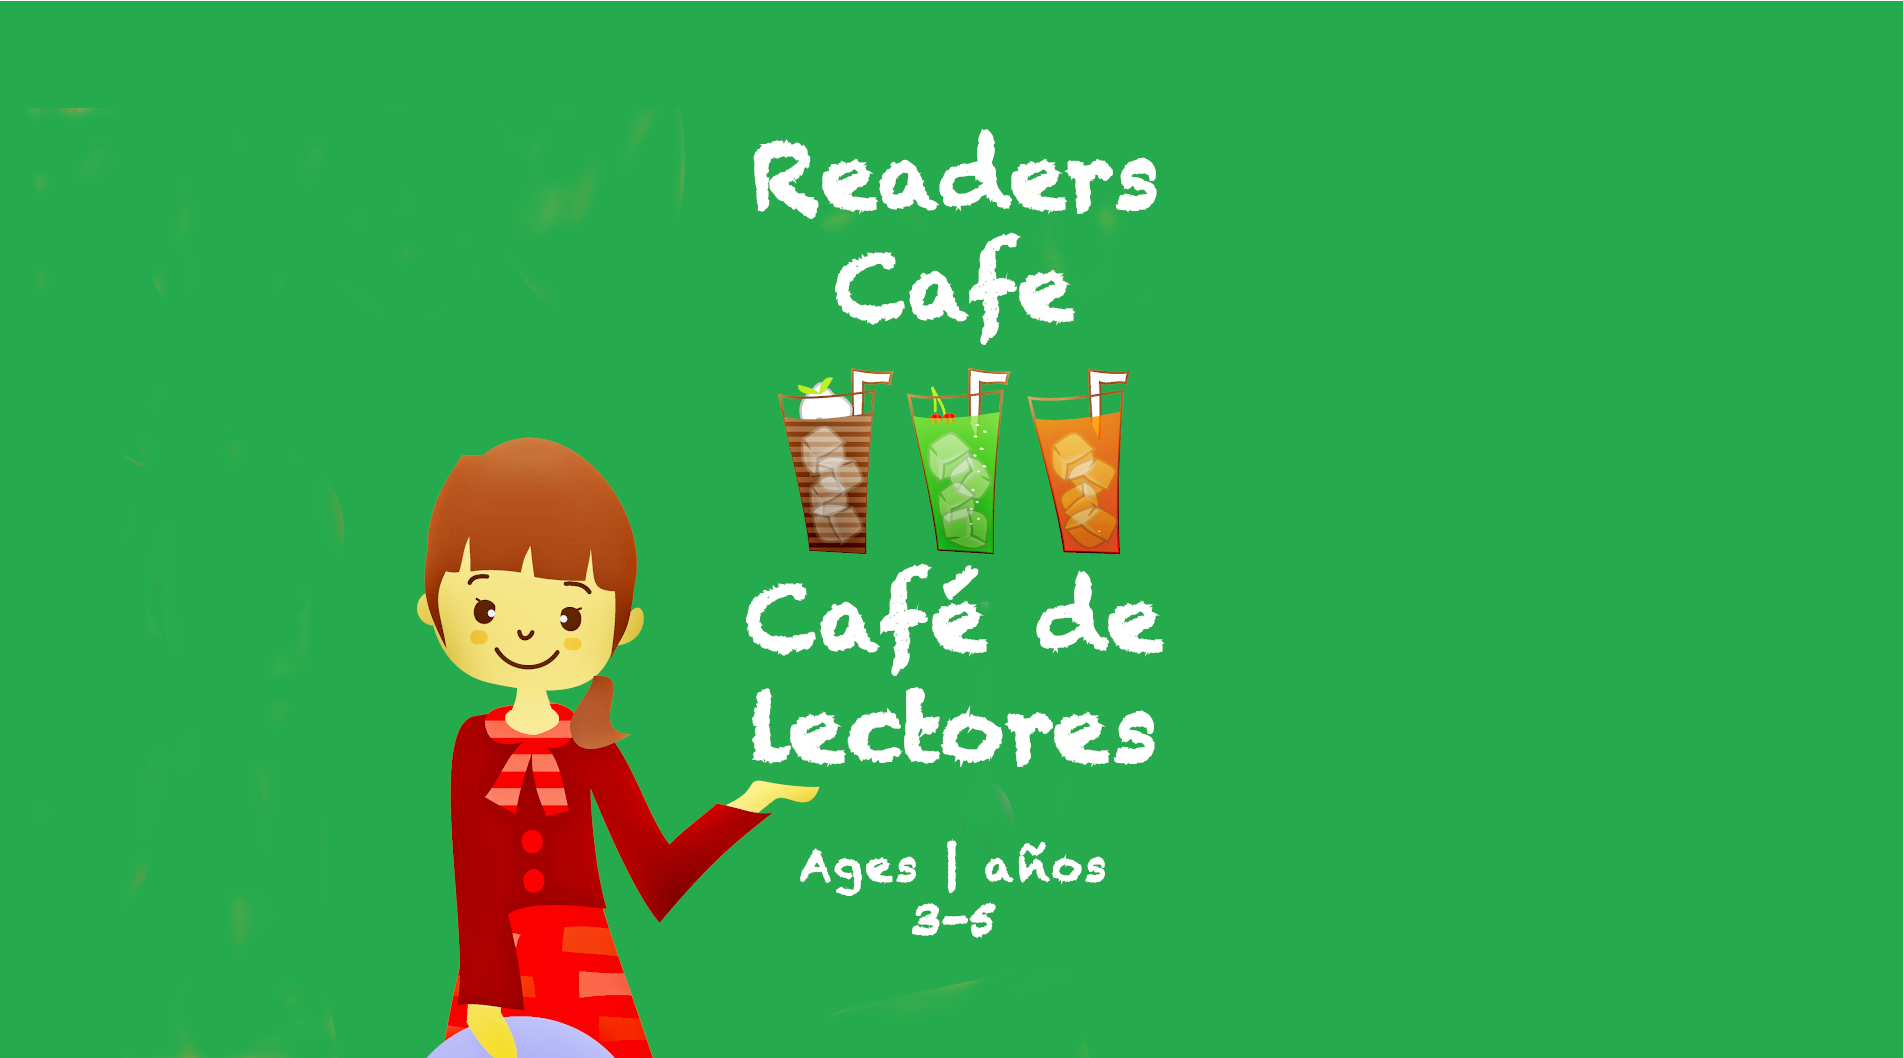 Weekly Themes #16 Reader's Cafe for 3-5 year olds